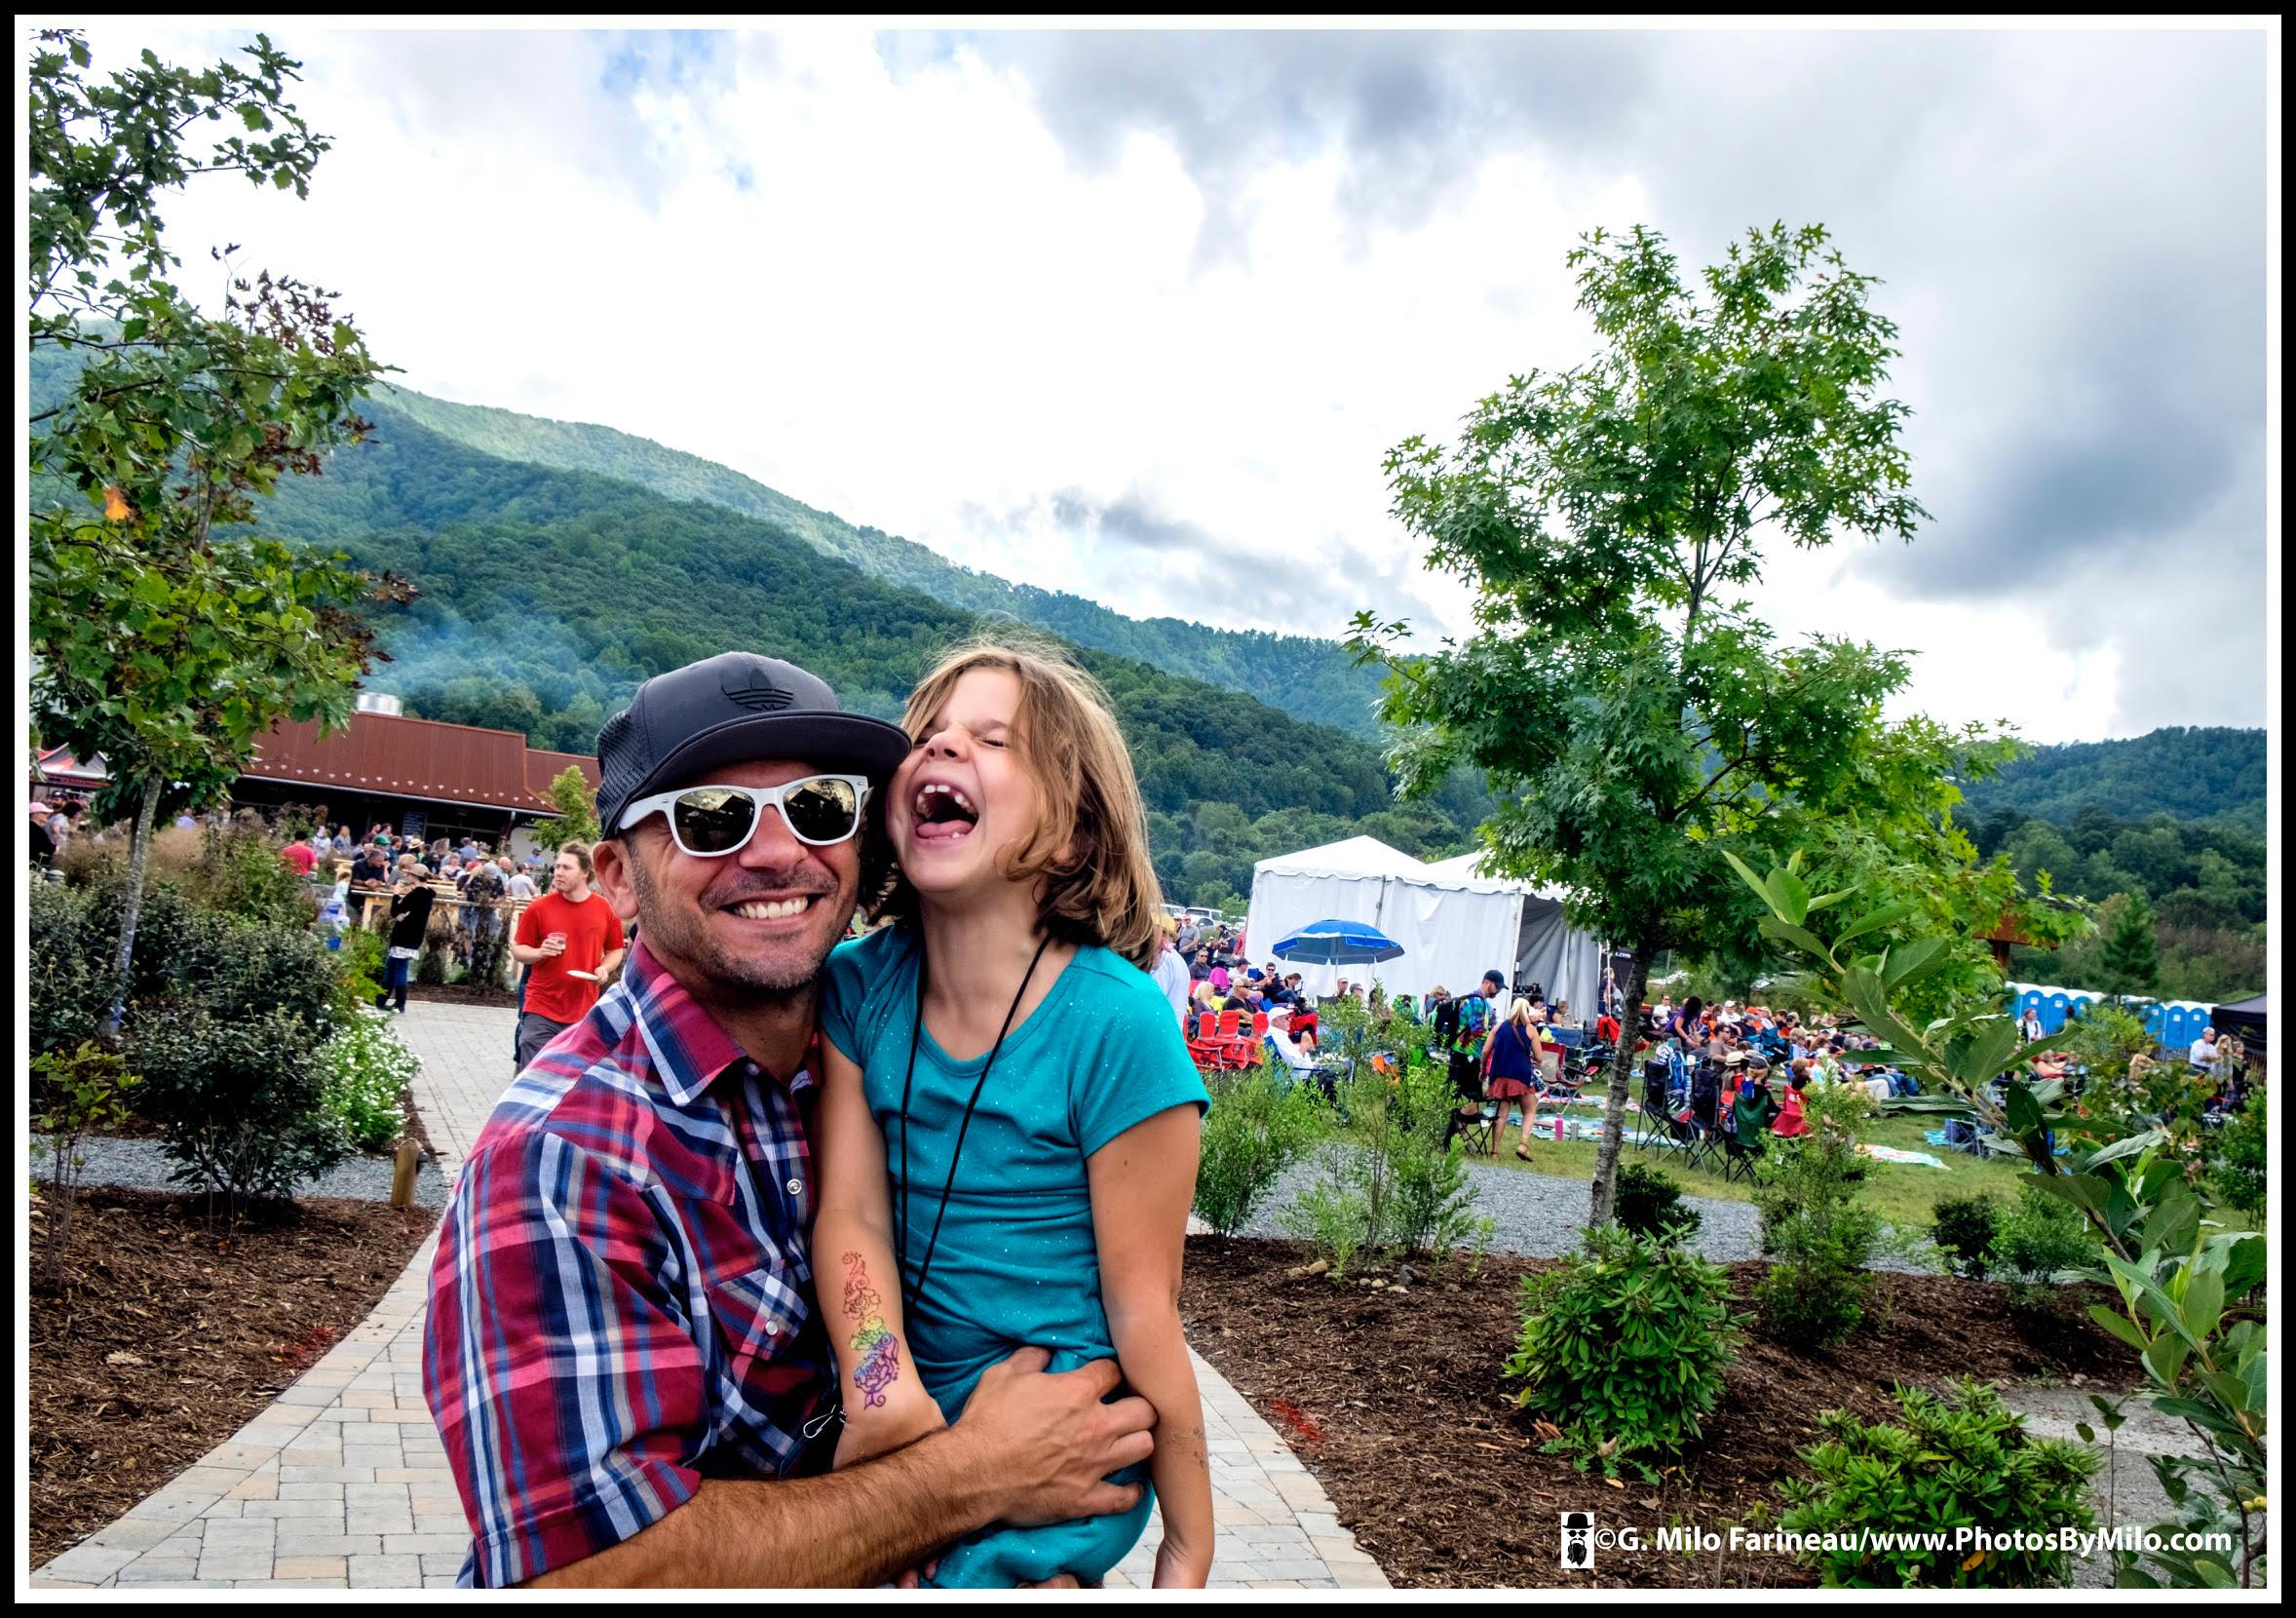 Founder Justin Billcheck and his daughter, photo courtesy of G. Milo Farineau Photography